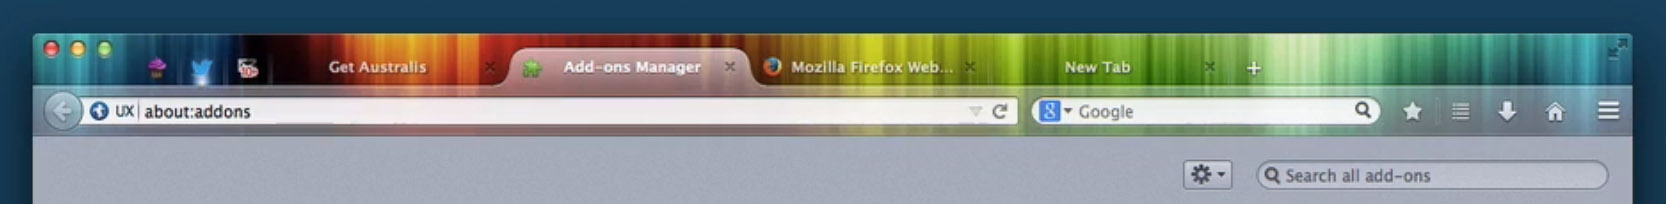 Want a new look? Australis is better for showing off themes, Mozilla believes.